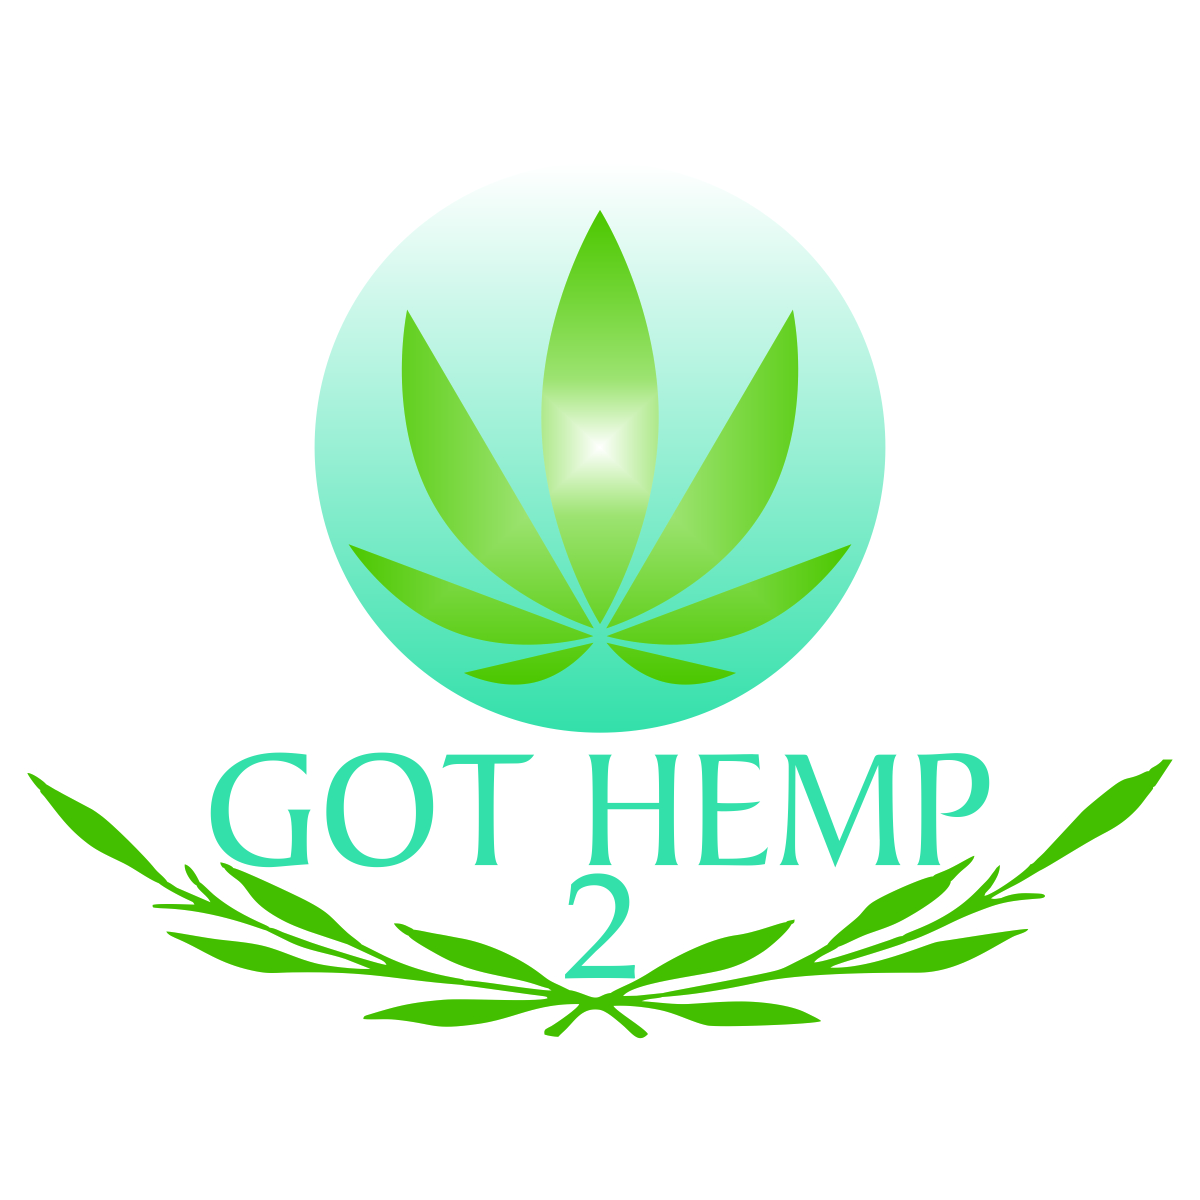 ECHELON LOCAL - ATLANTA GA | INTERNET MARKETING SERVICE | GROW YOUR BUSINESS | GOT HEMP 2 REVIEW LOGO